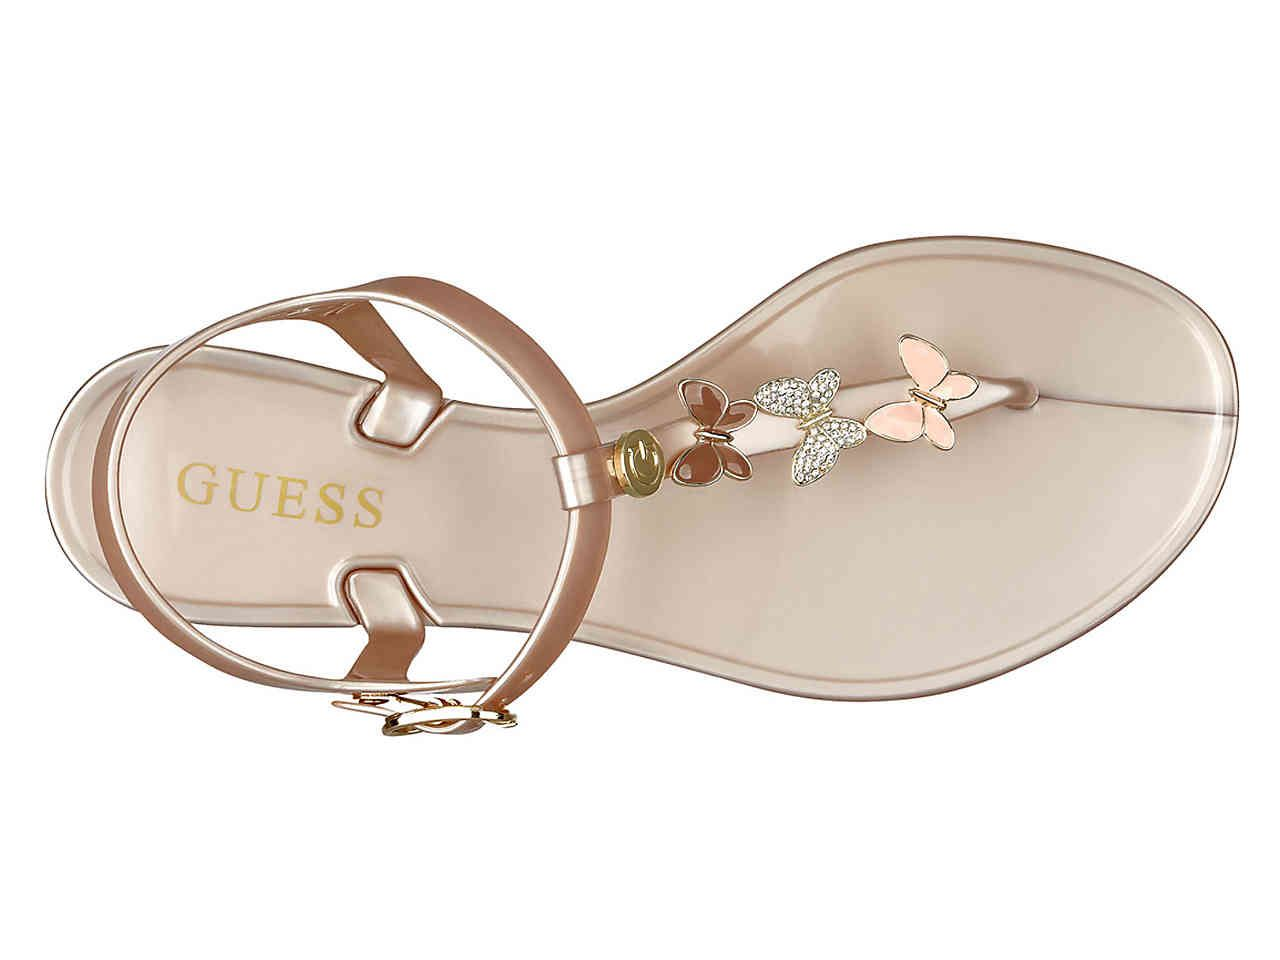 eeb33946d Guess Alaina Jelly Sandal Women s Shoes